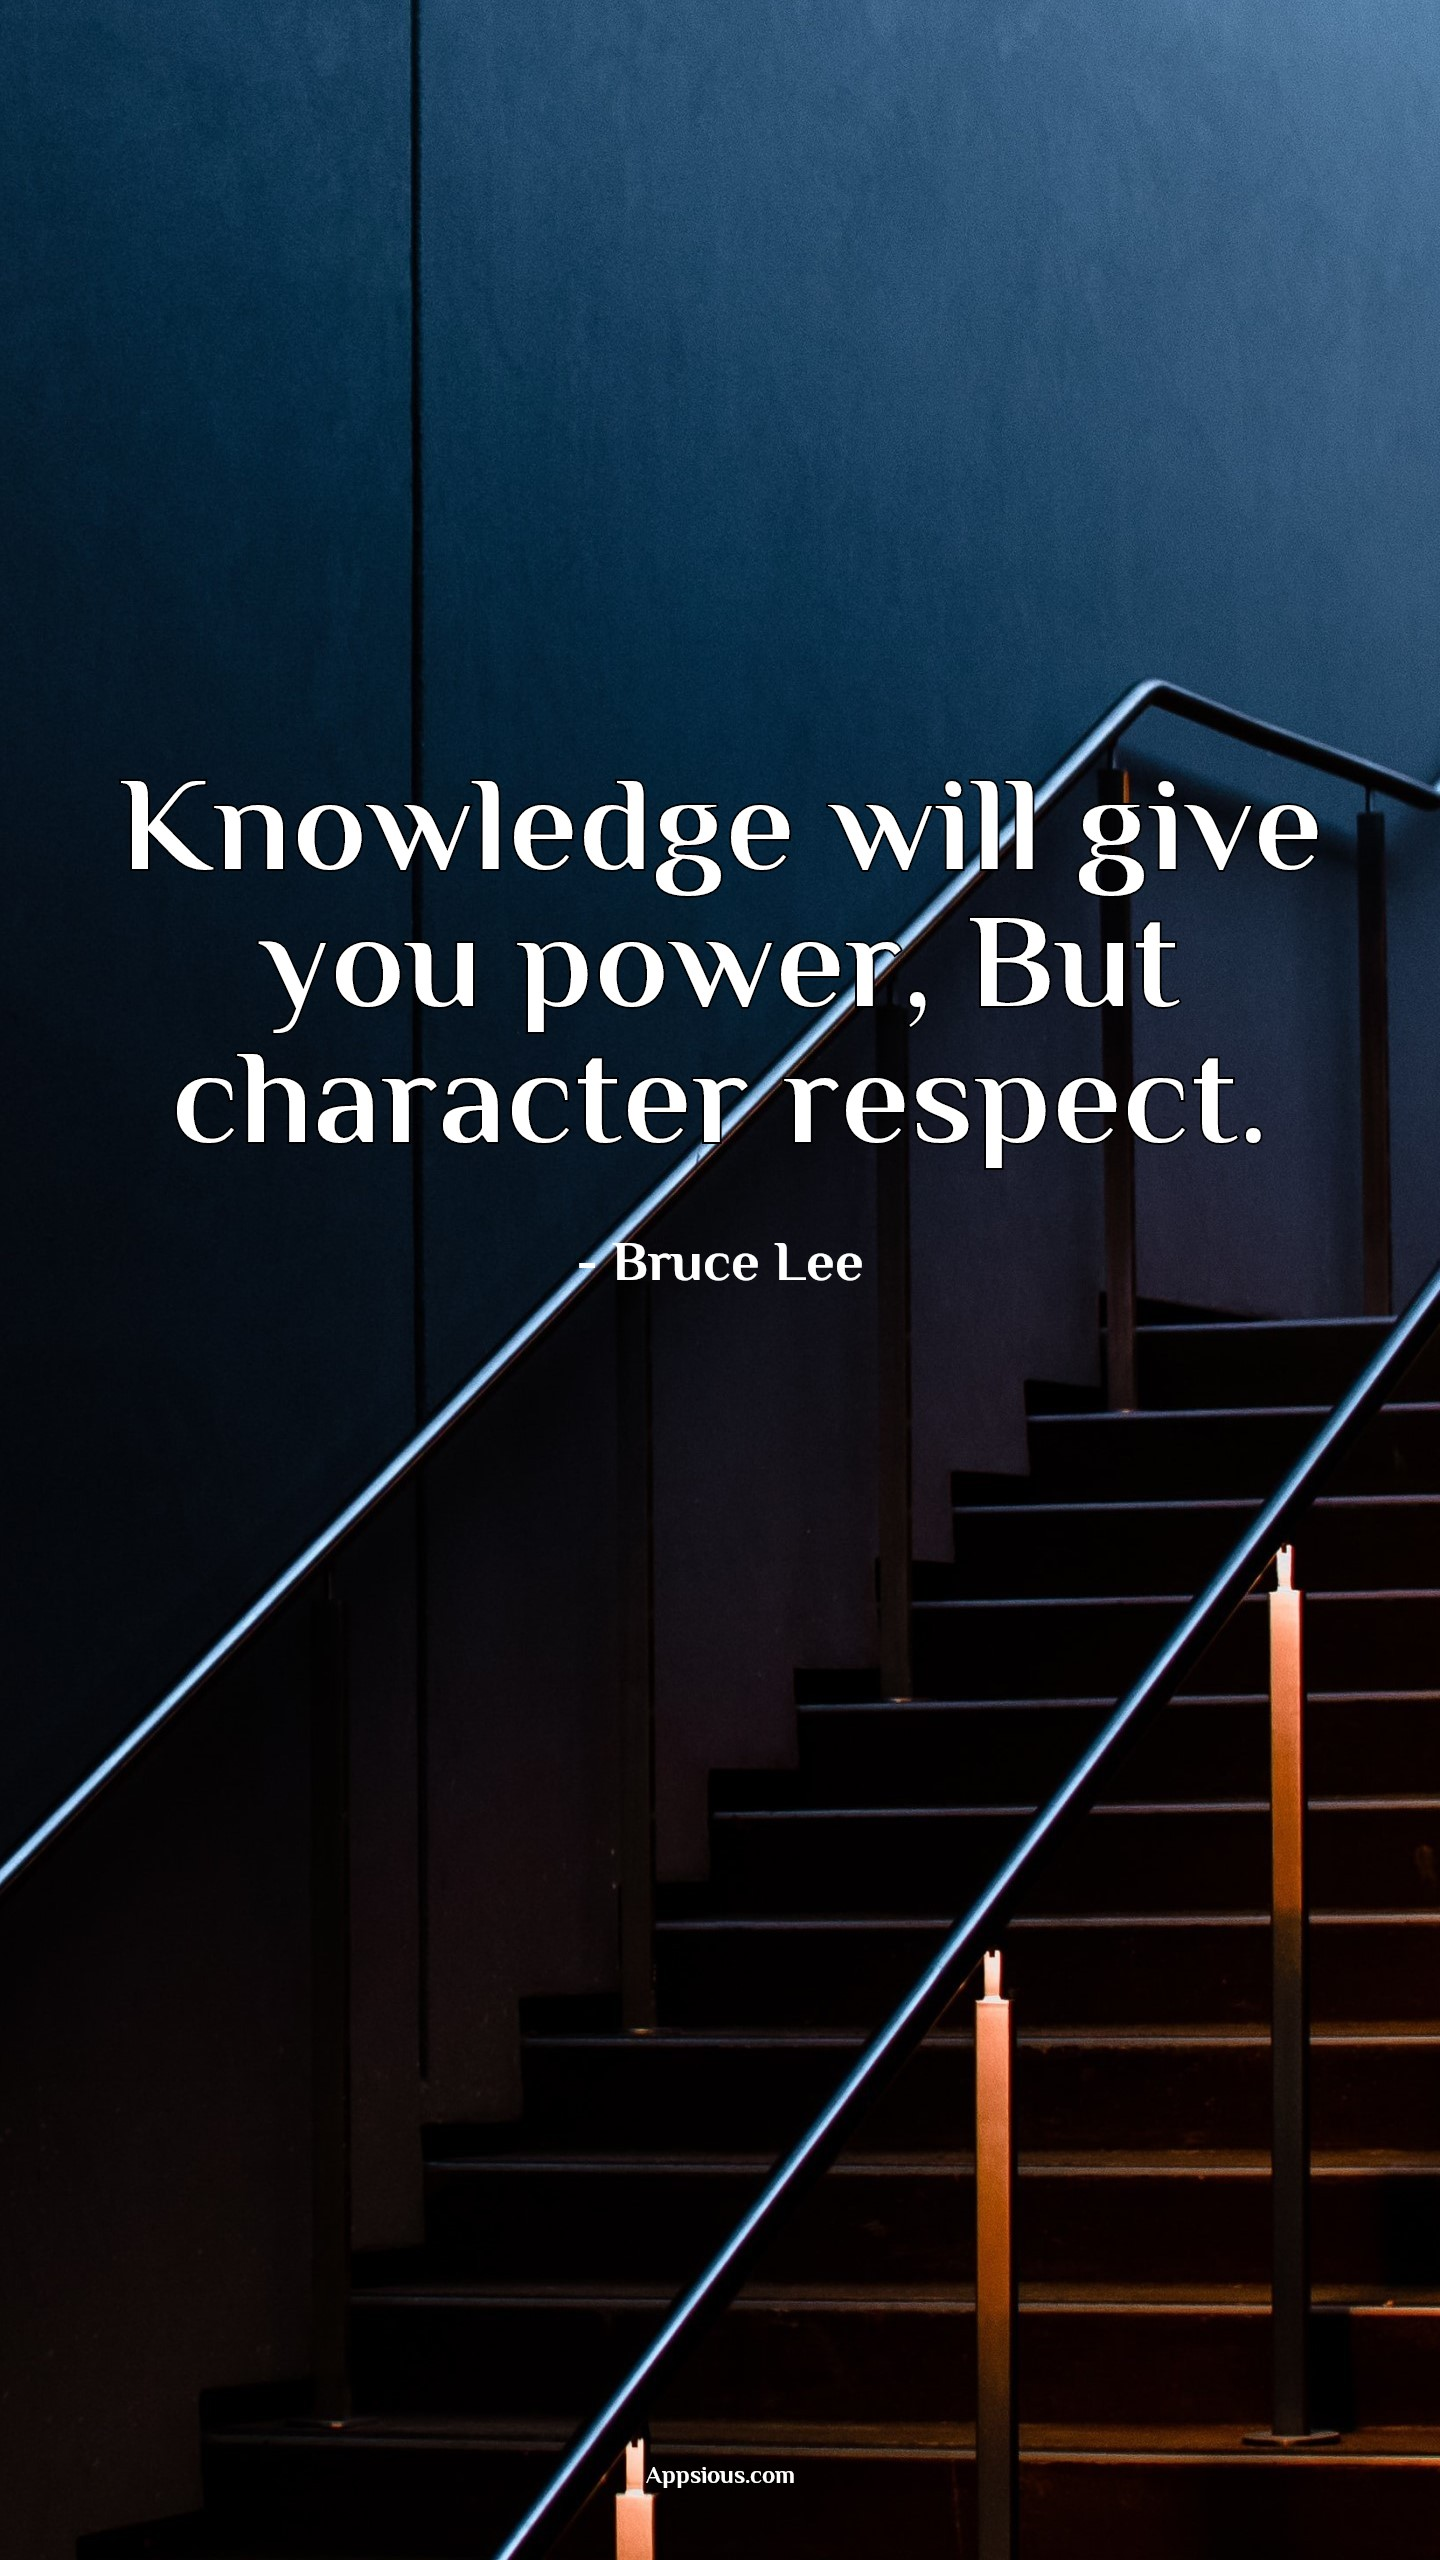 Knowledge will give you power, But character respect.